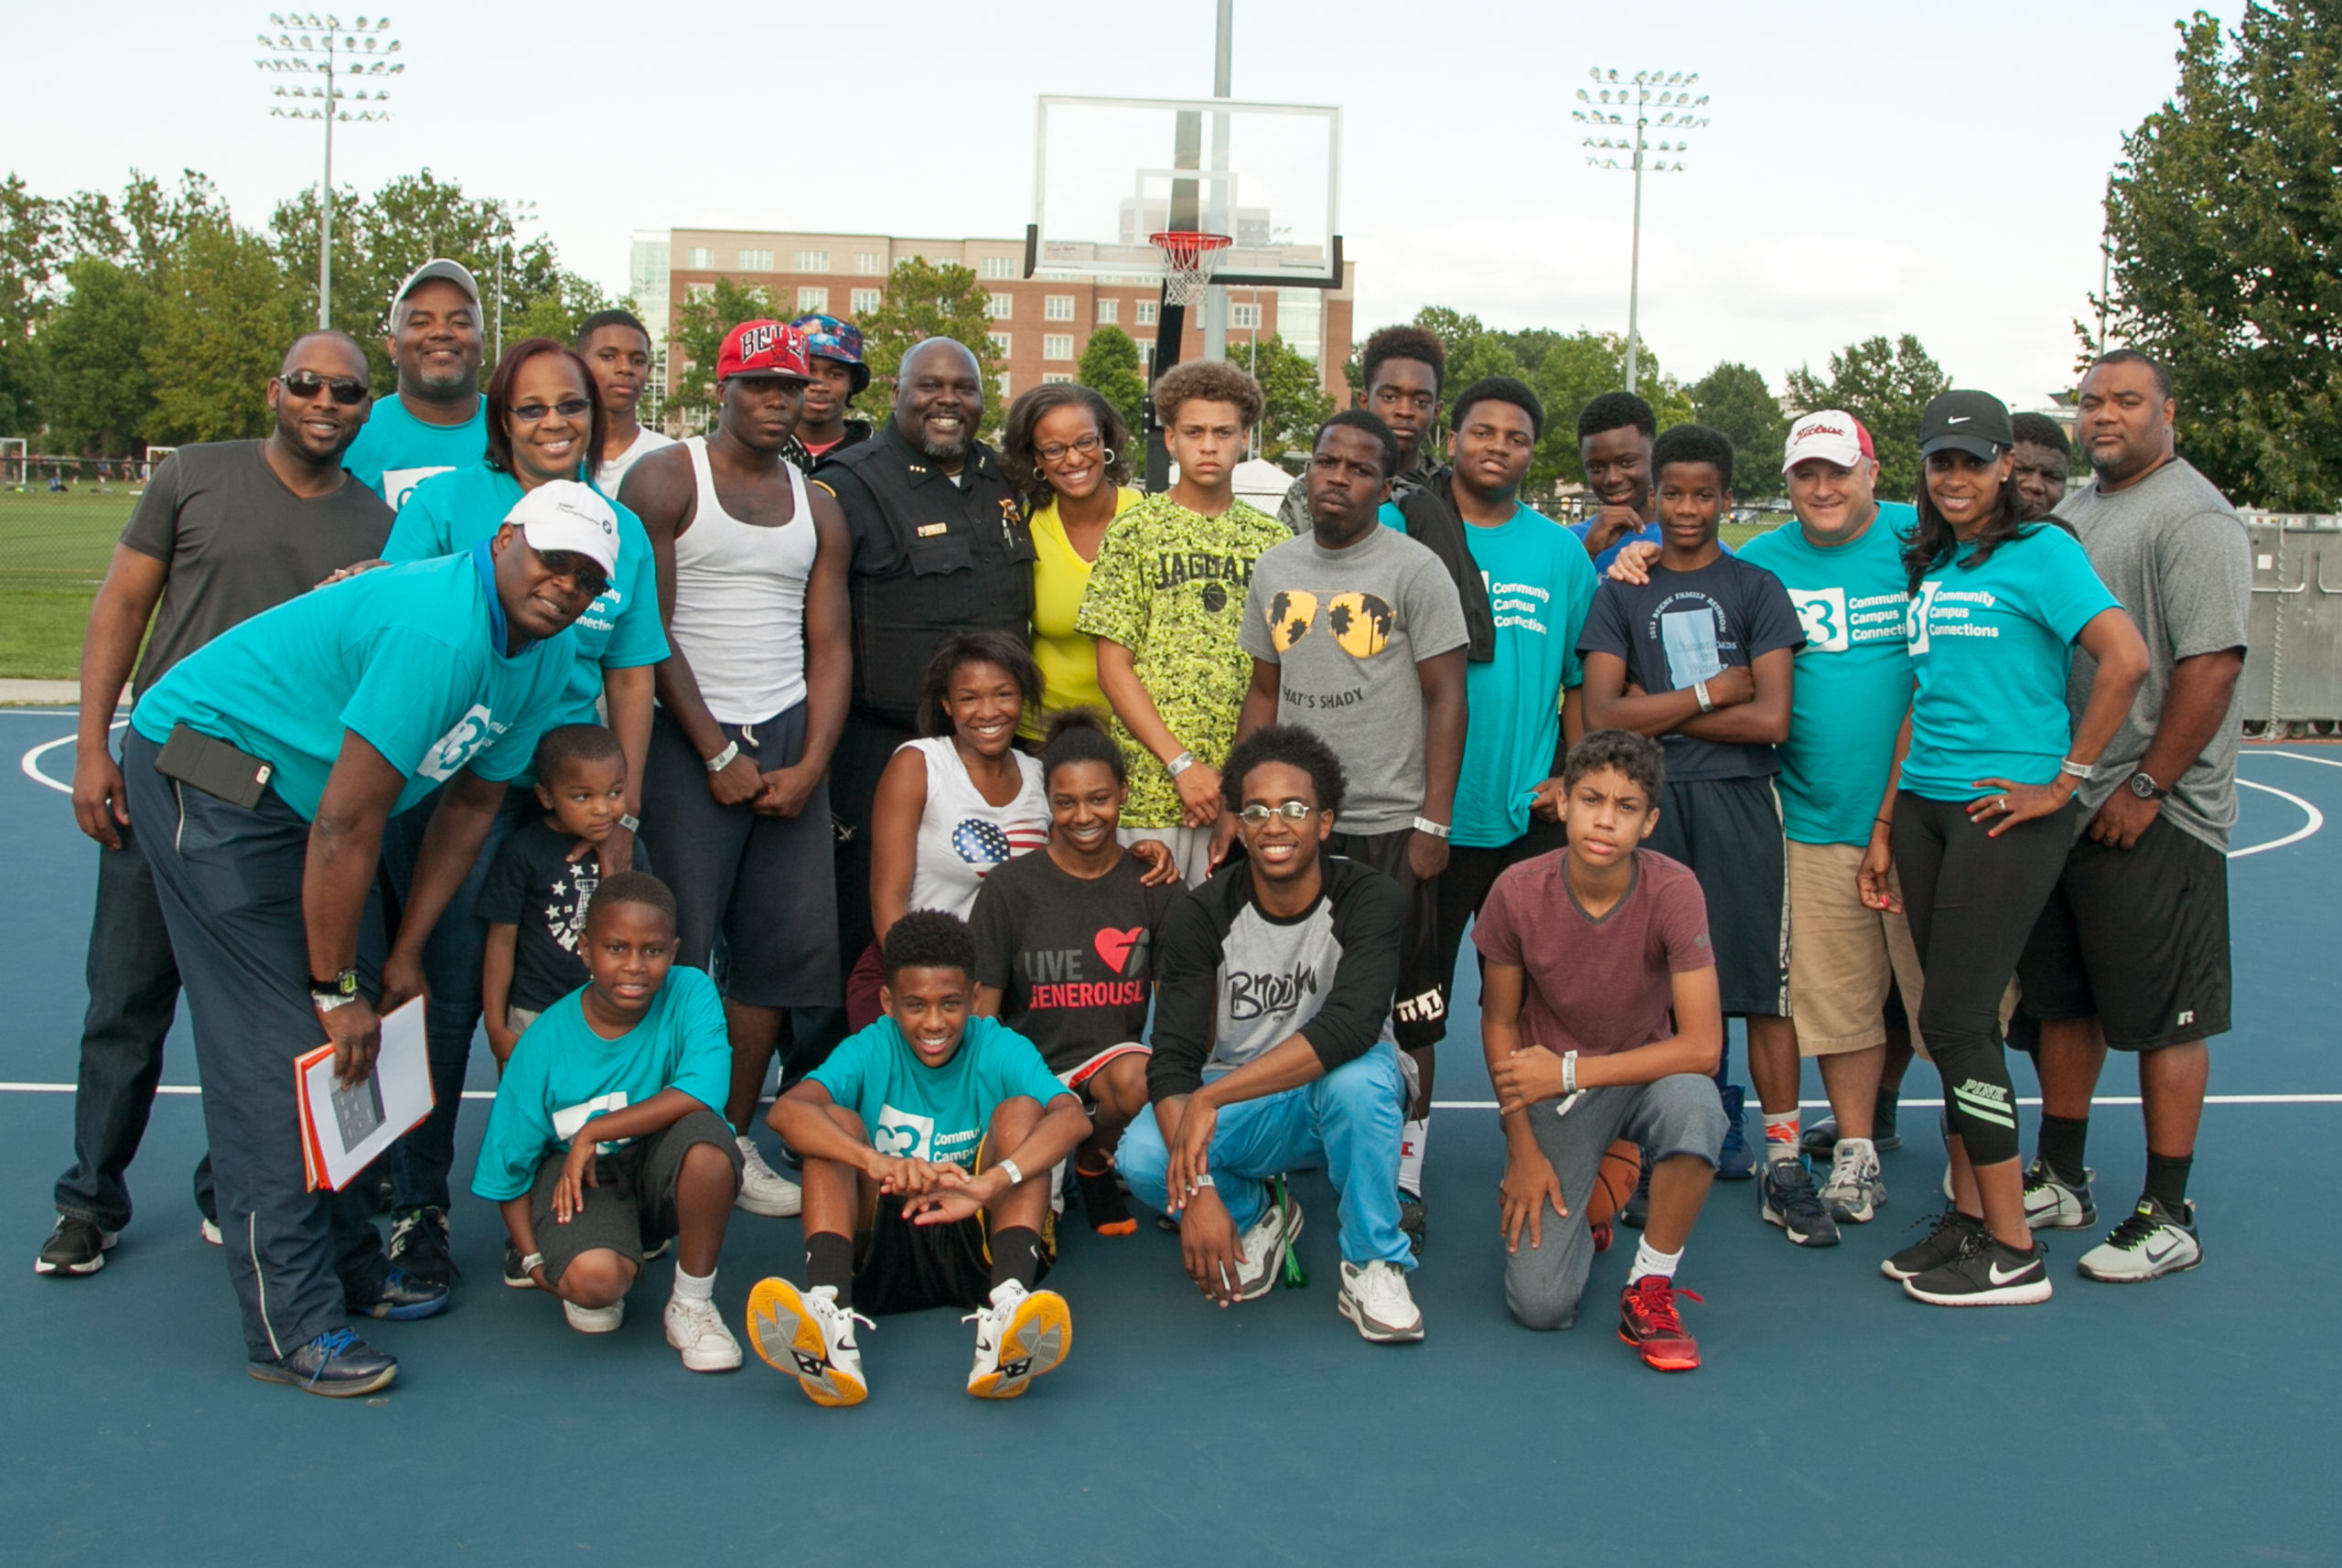 Youth group at basketball court